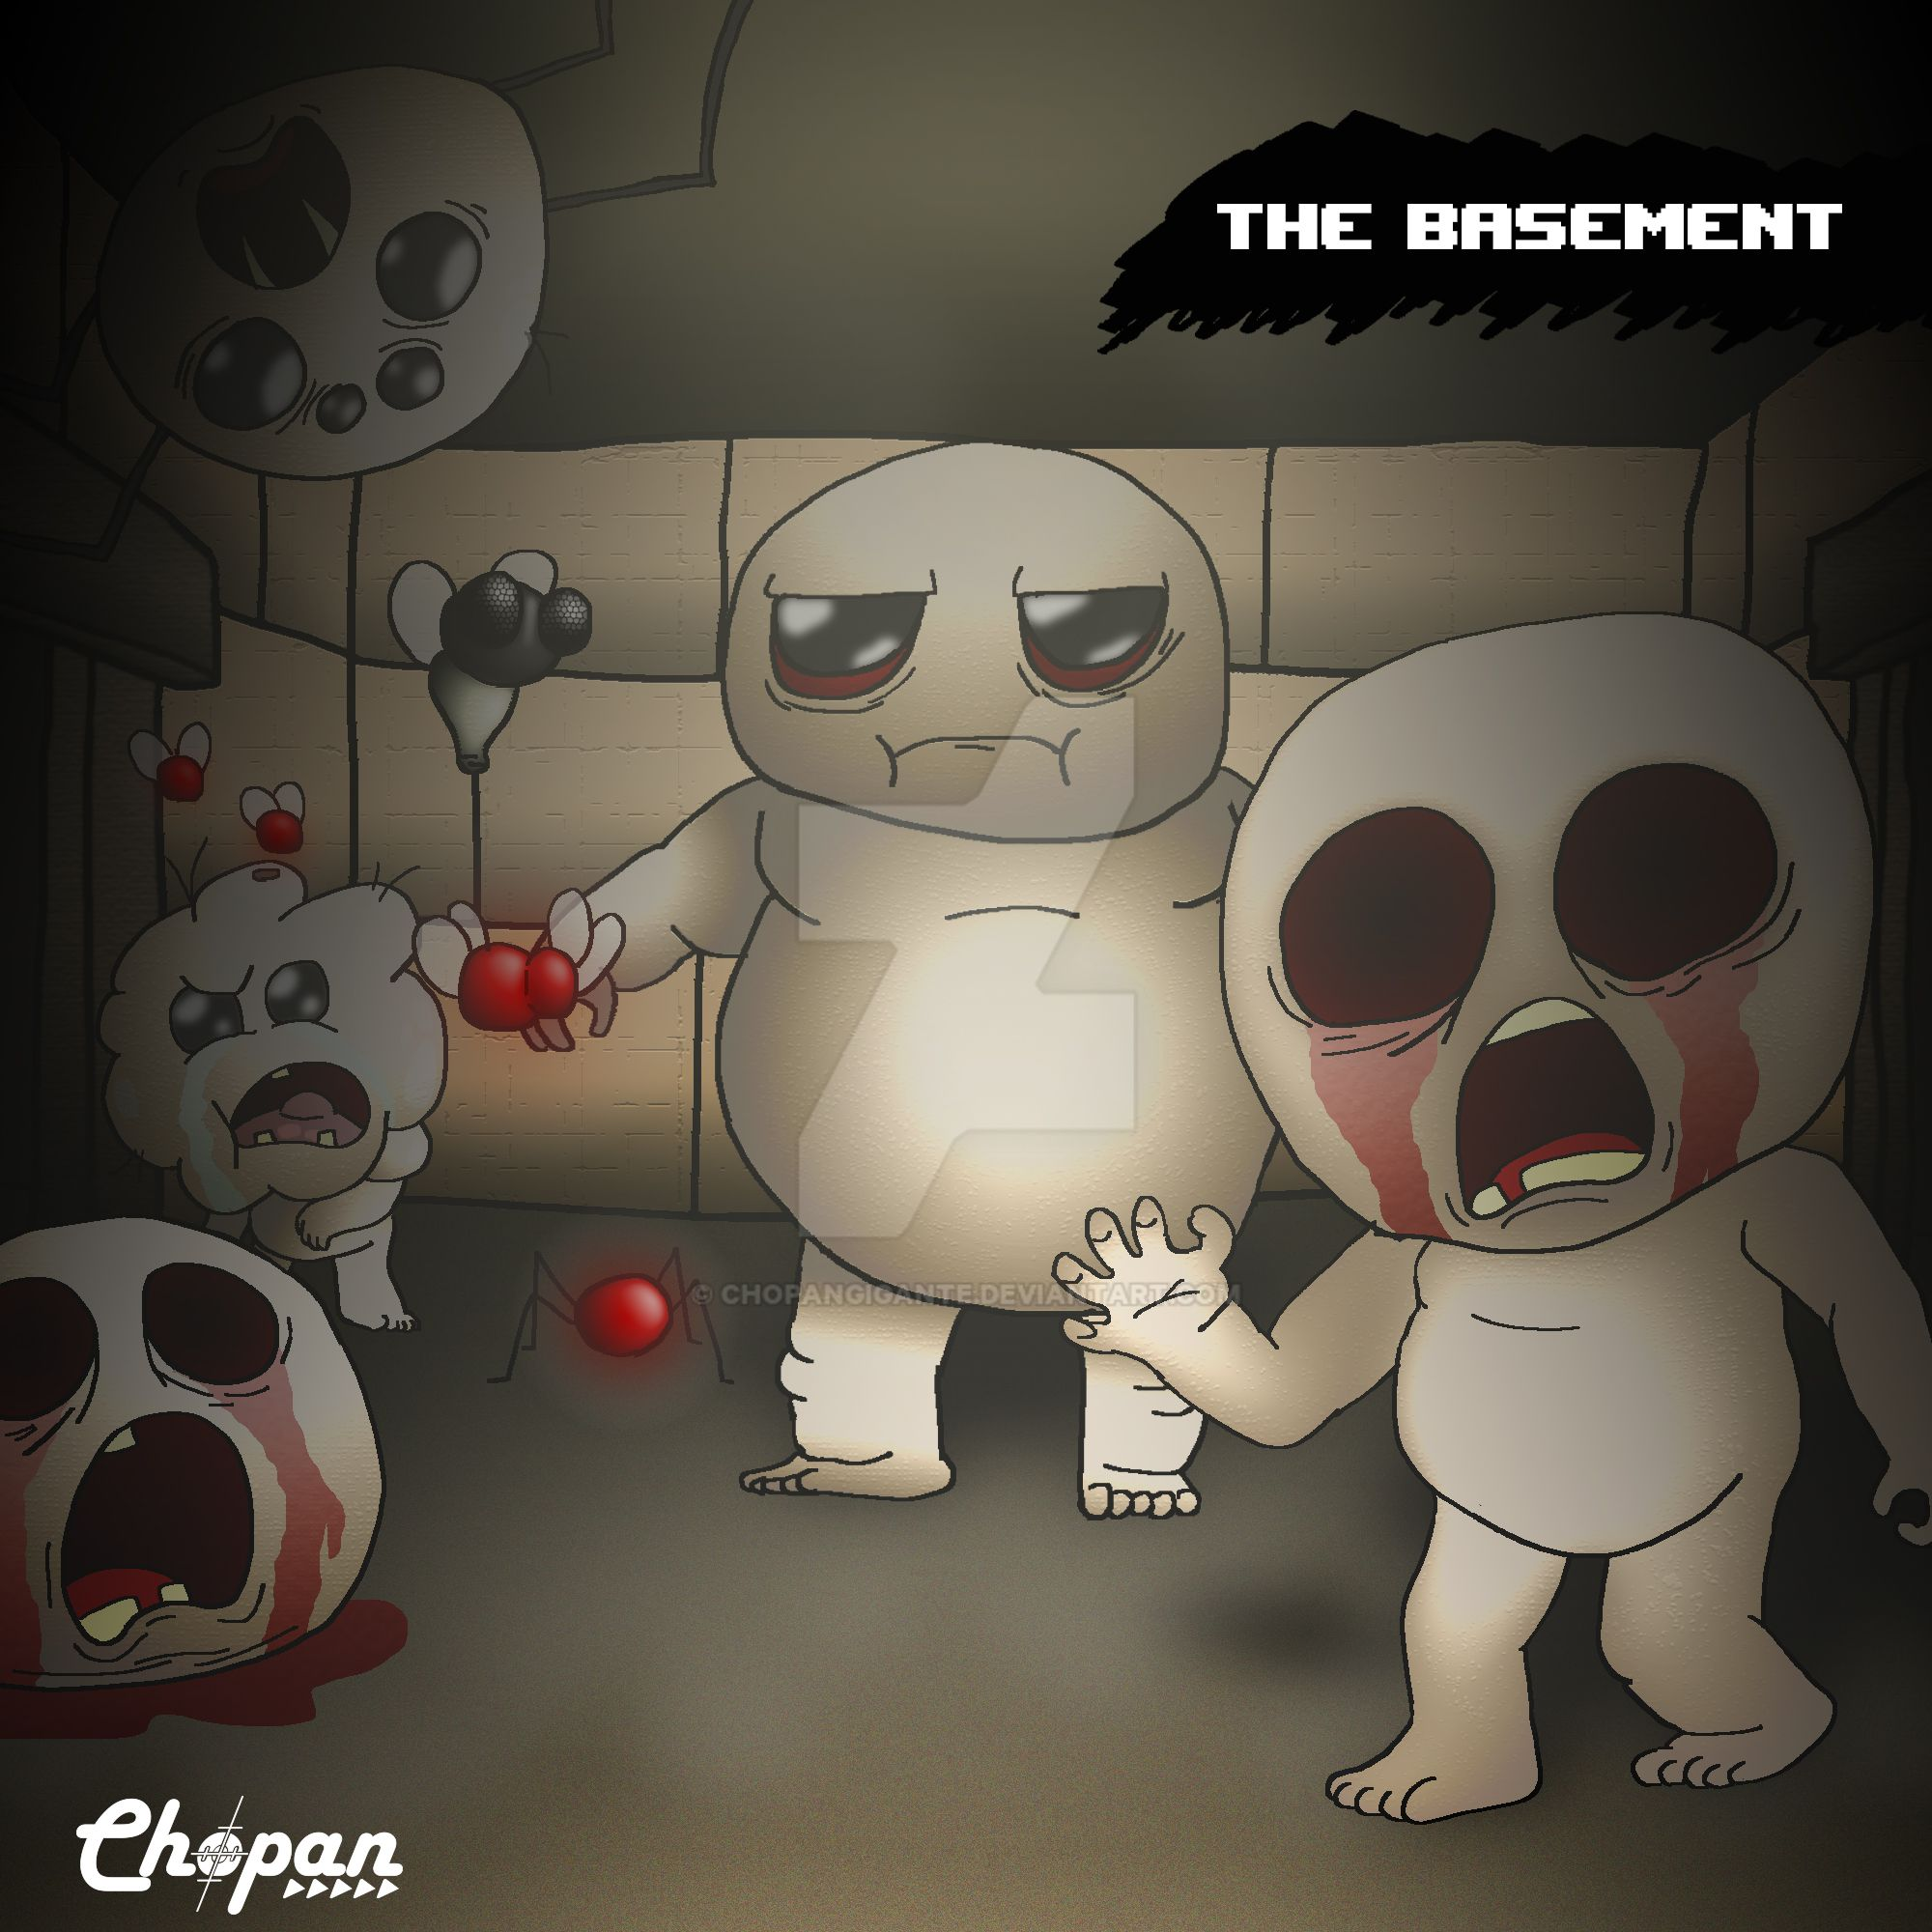 welcome to the basement by chopangigante on deviantart